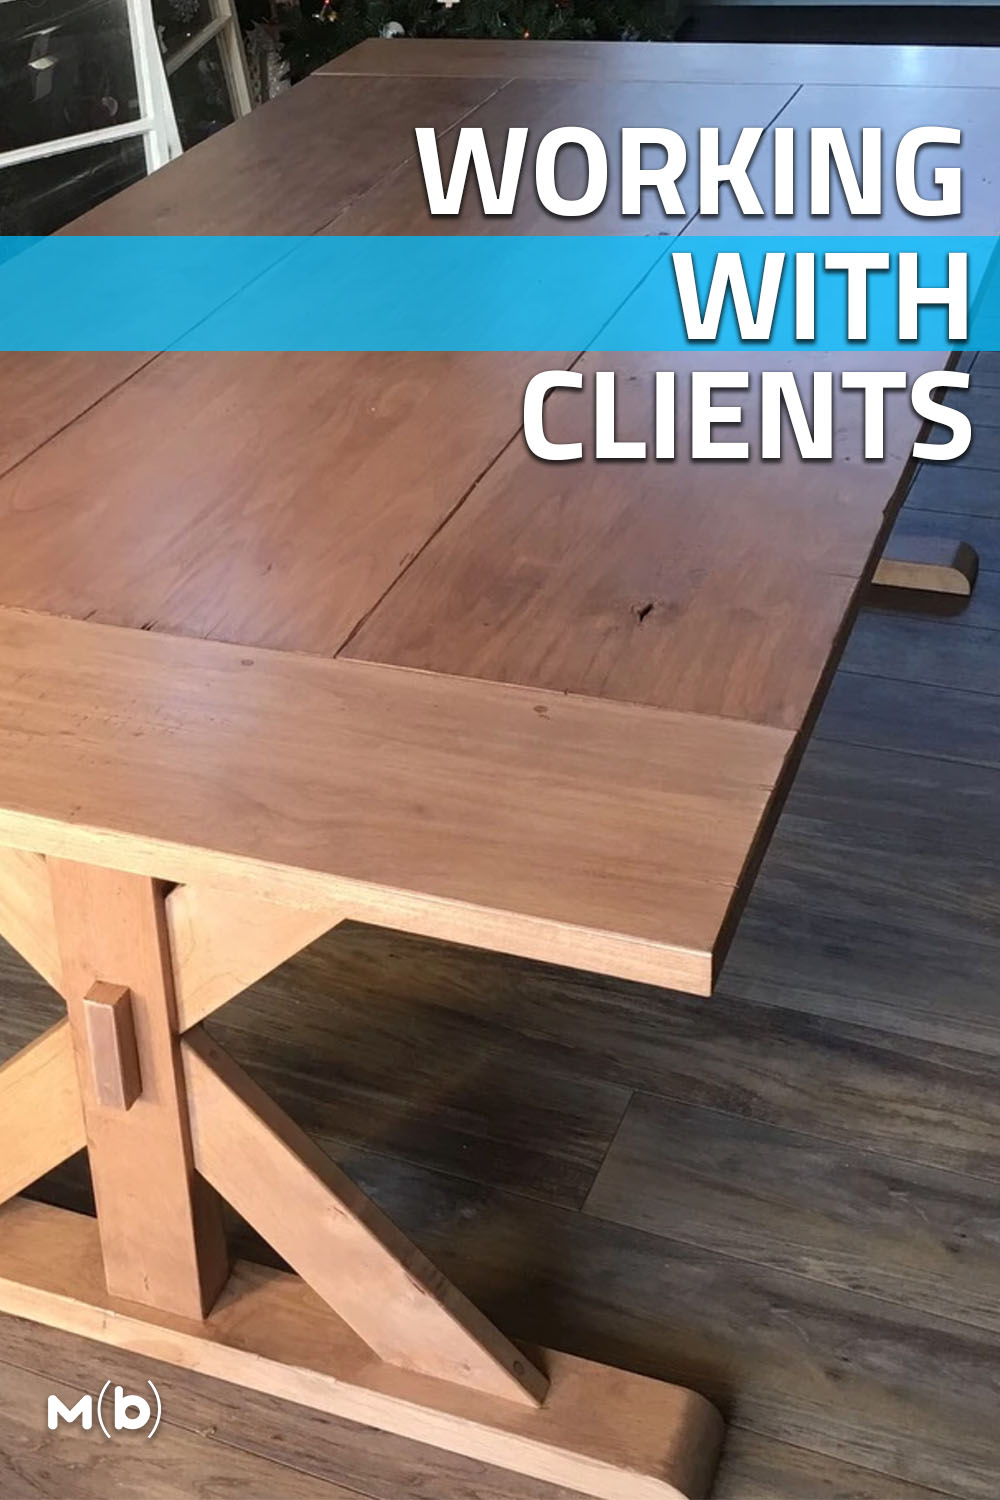 What does it take to build furniture for clients? We chat with part-time woodworker Justin Cunanan to find out!